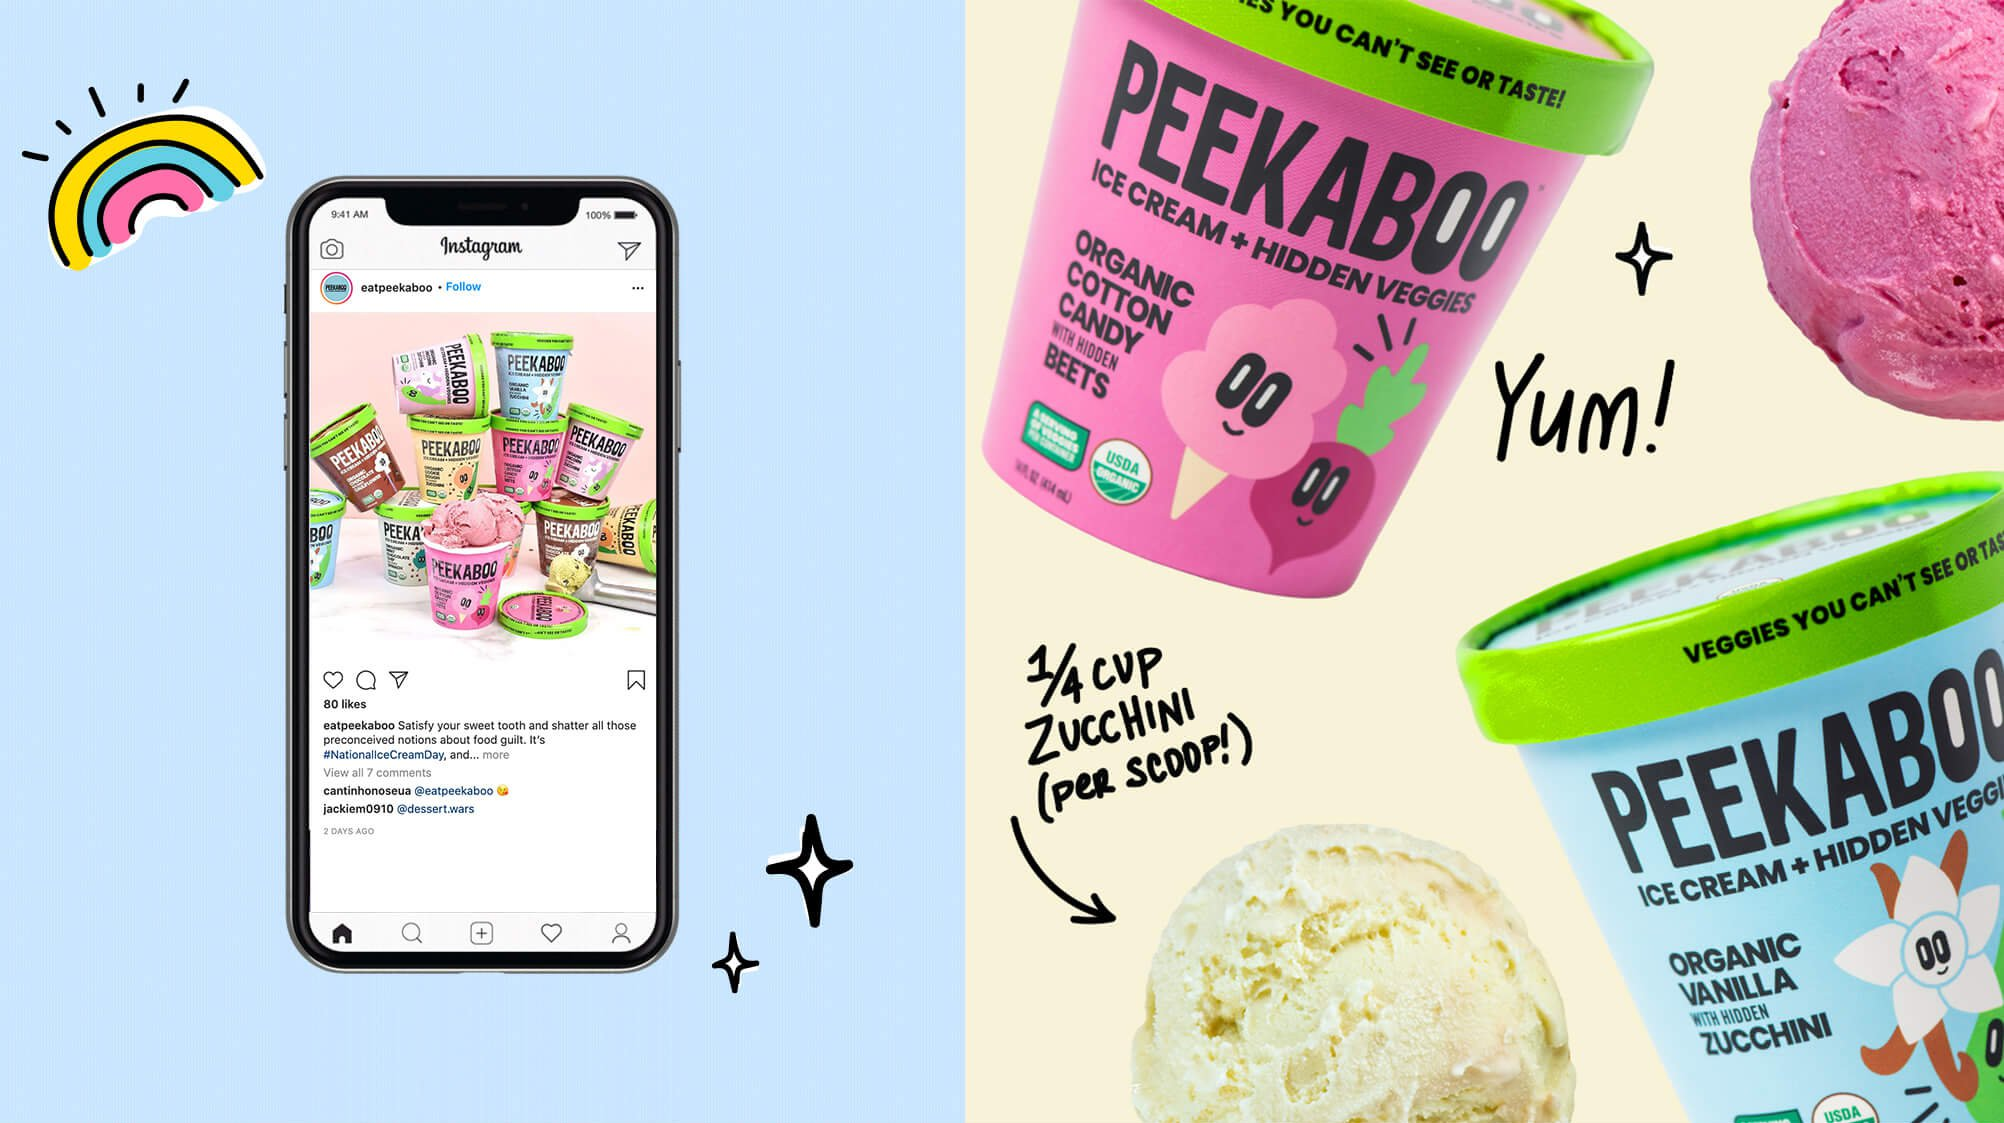 Jacober rebranding of Peekaboo Ice Cream. Photo of a social media post displayed on mobile device and a single graphic to the right